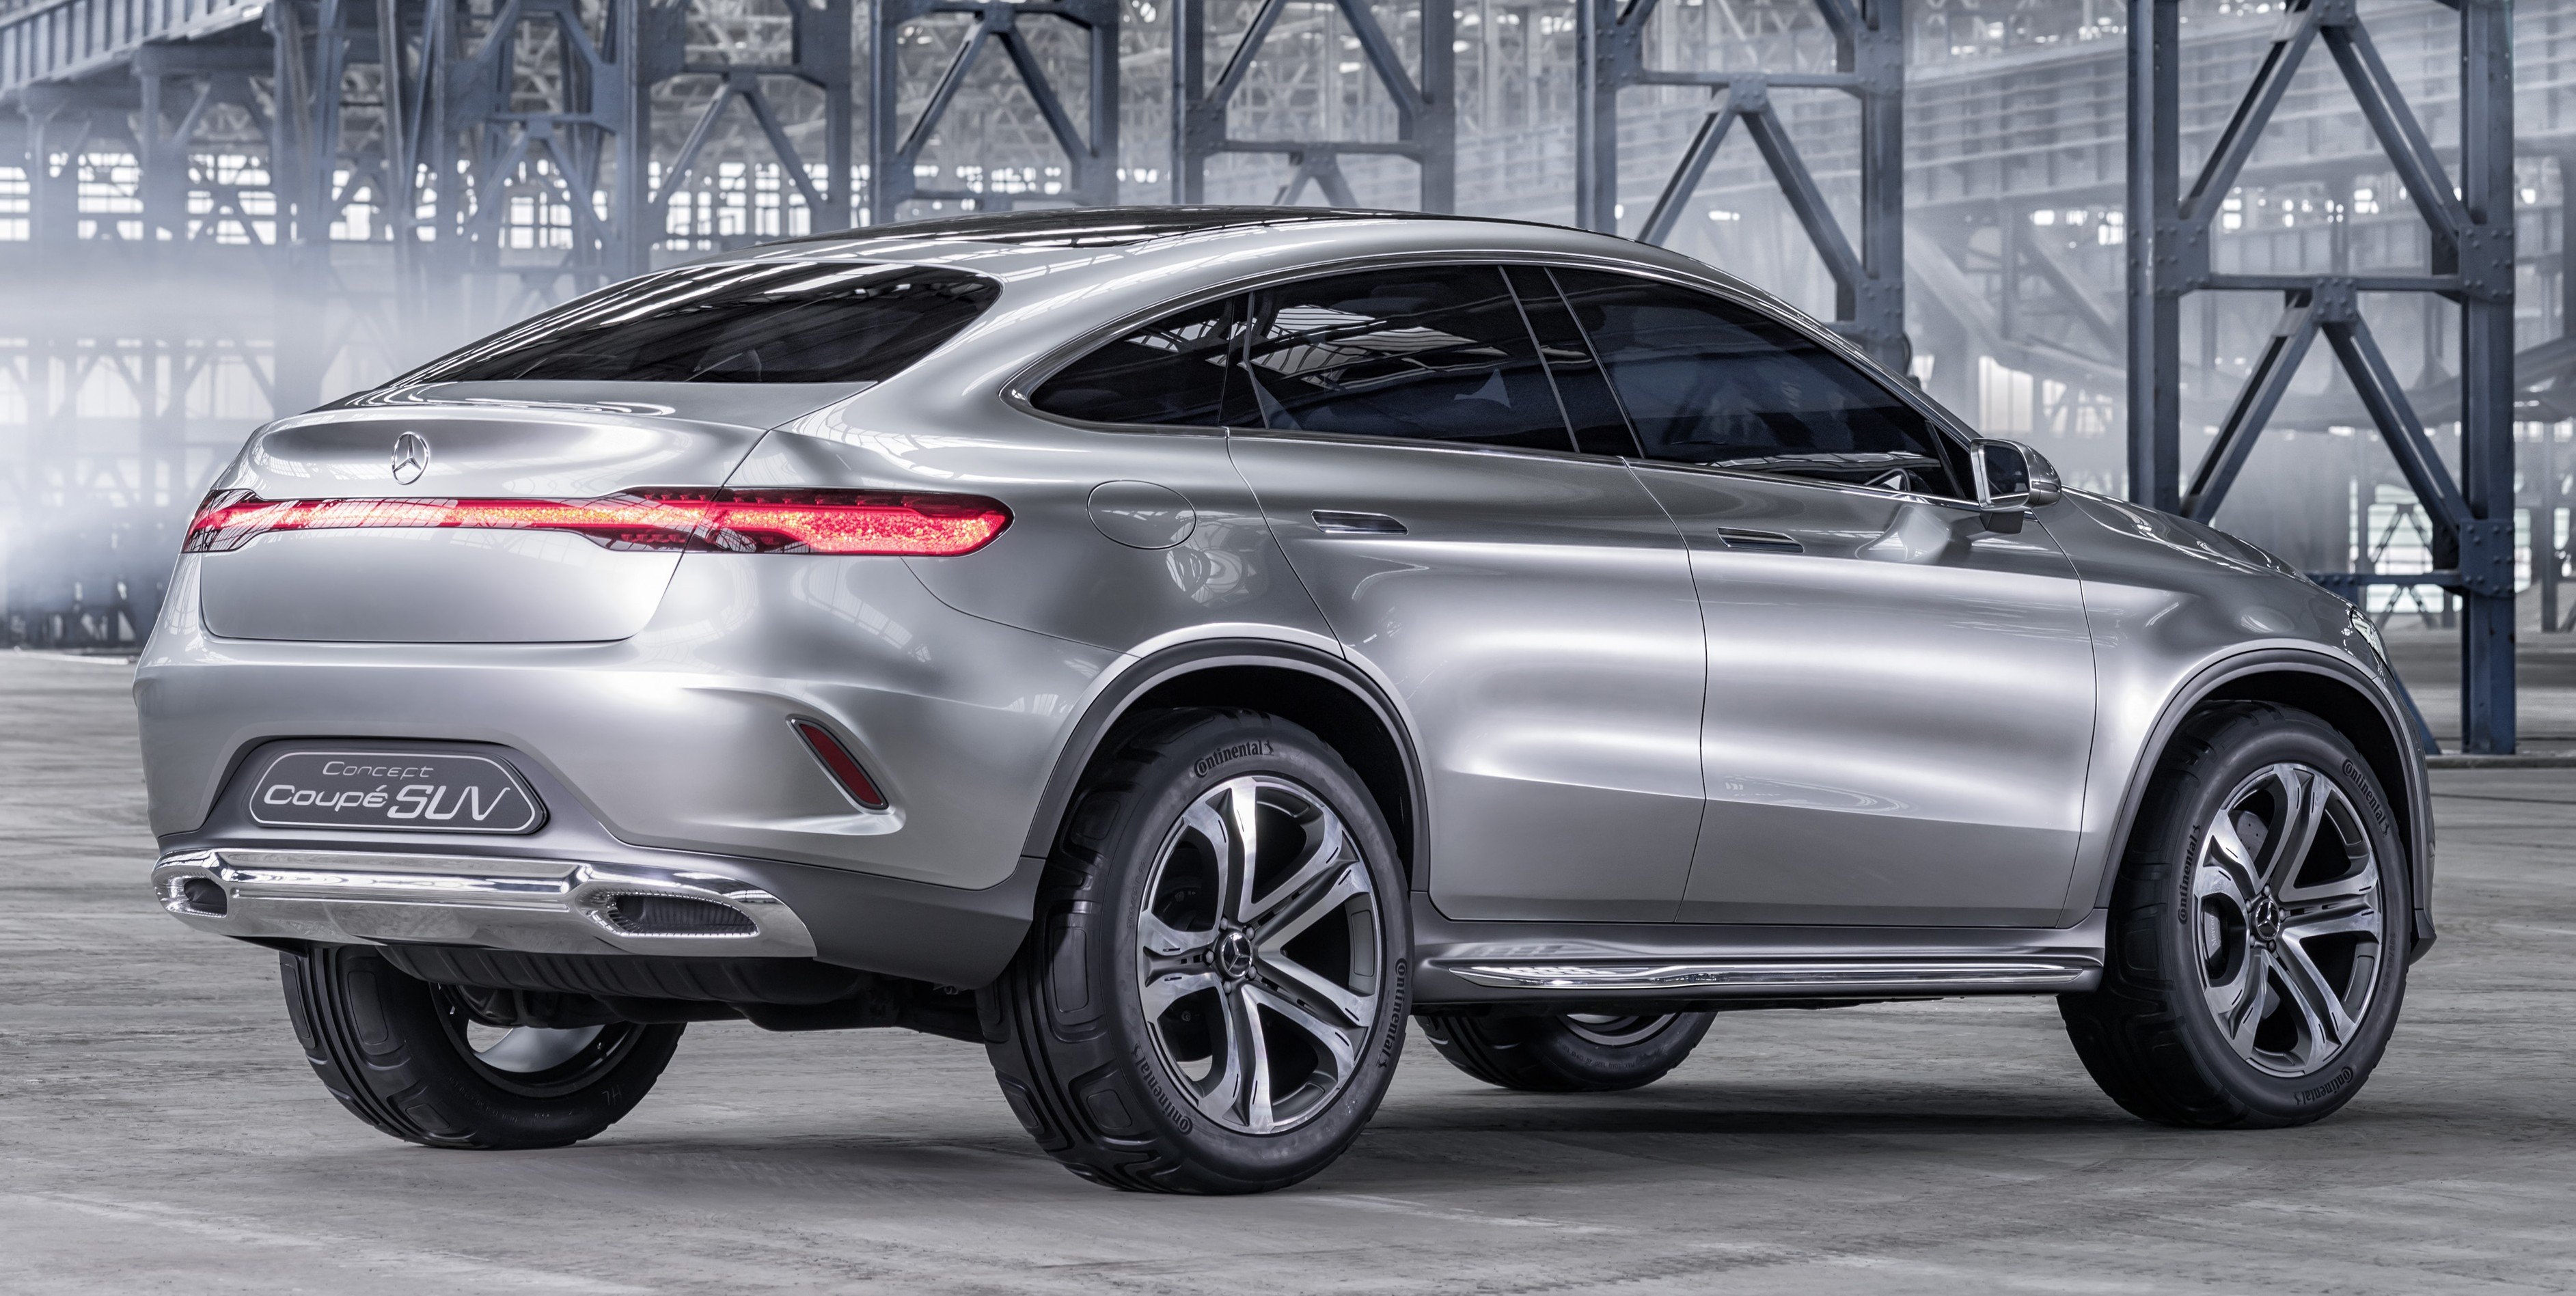 Mercedes benz coupe suv concept previews x6 rival image 242569 for Mercedes benz suv coupe